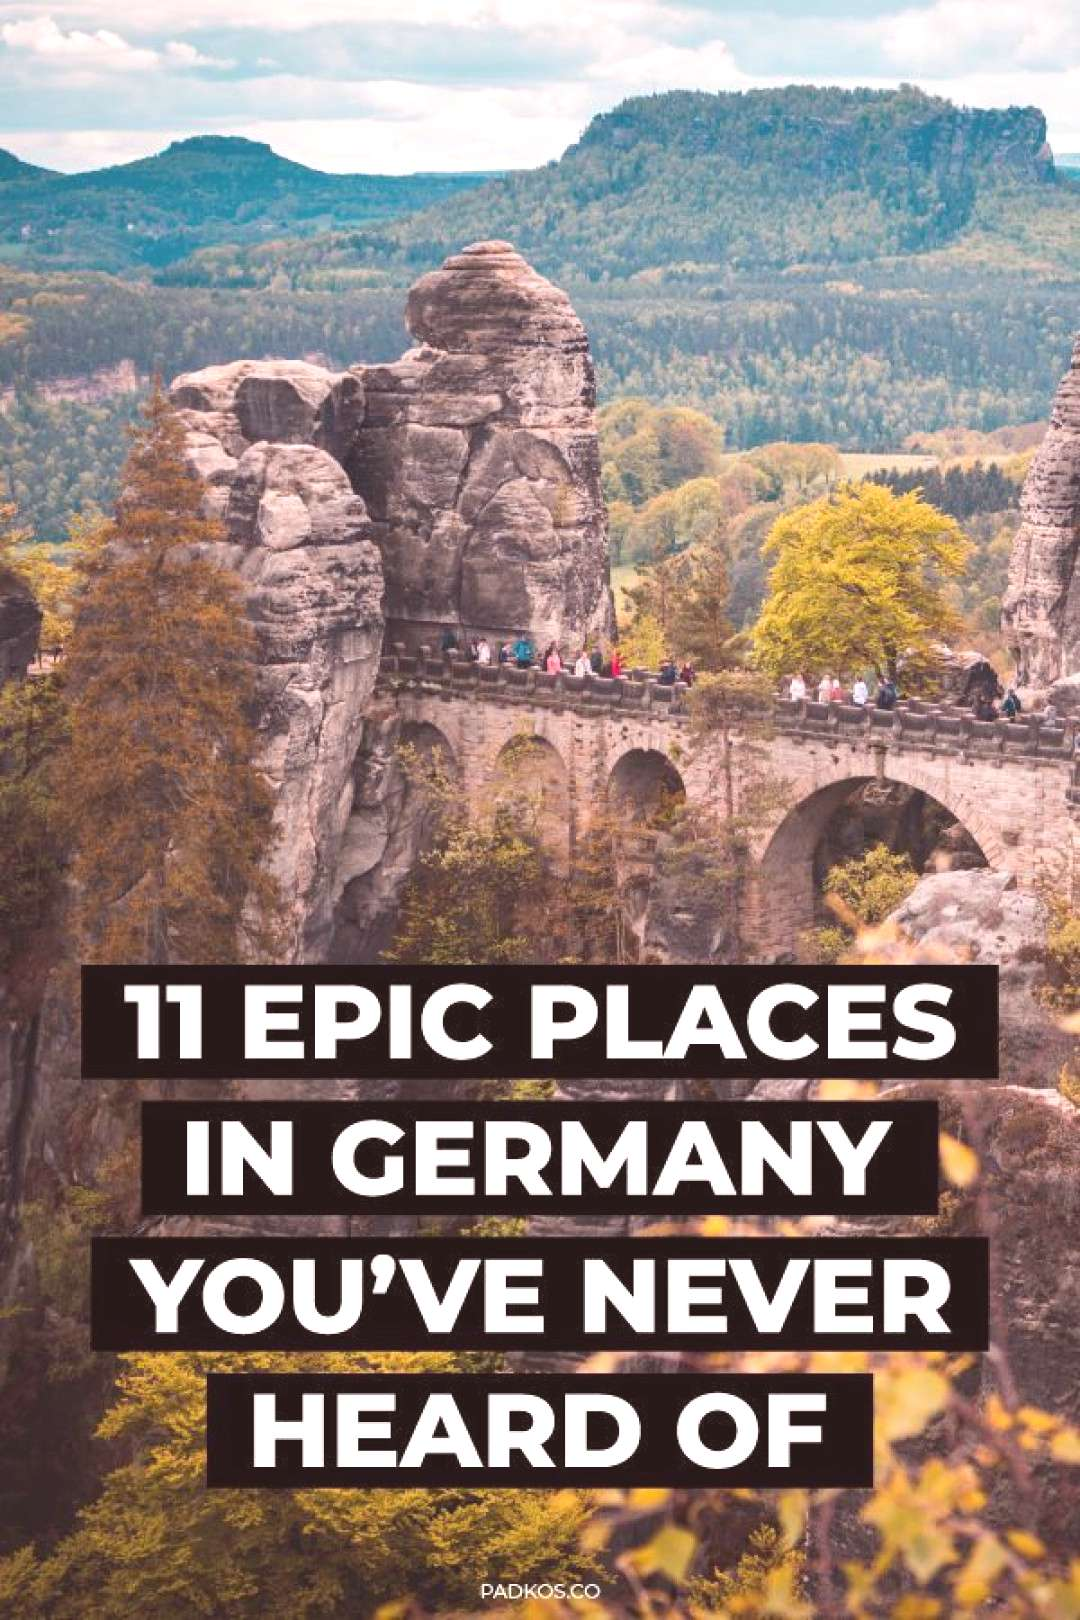 11 epic places in Germany youve never heard of. Germany is full of incredible places to visit and